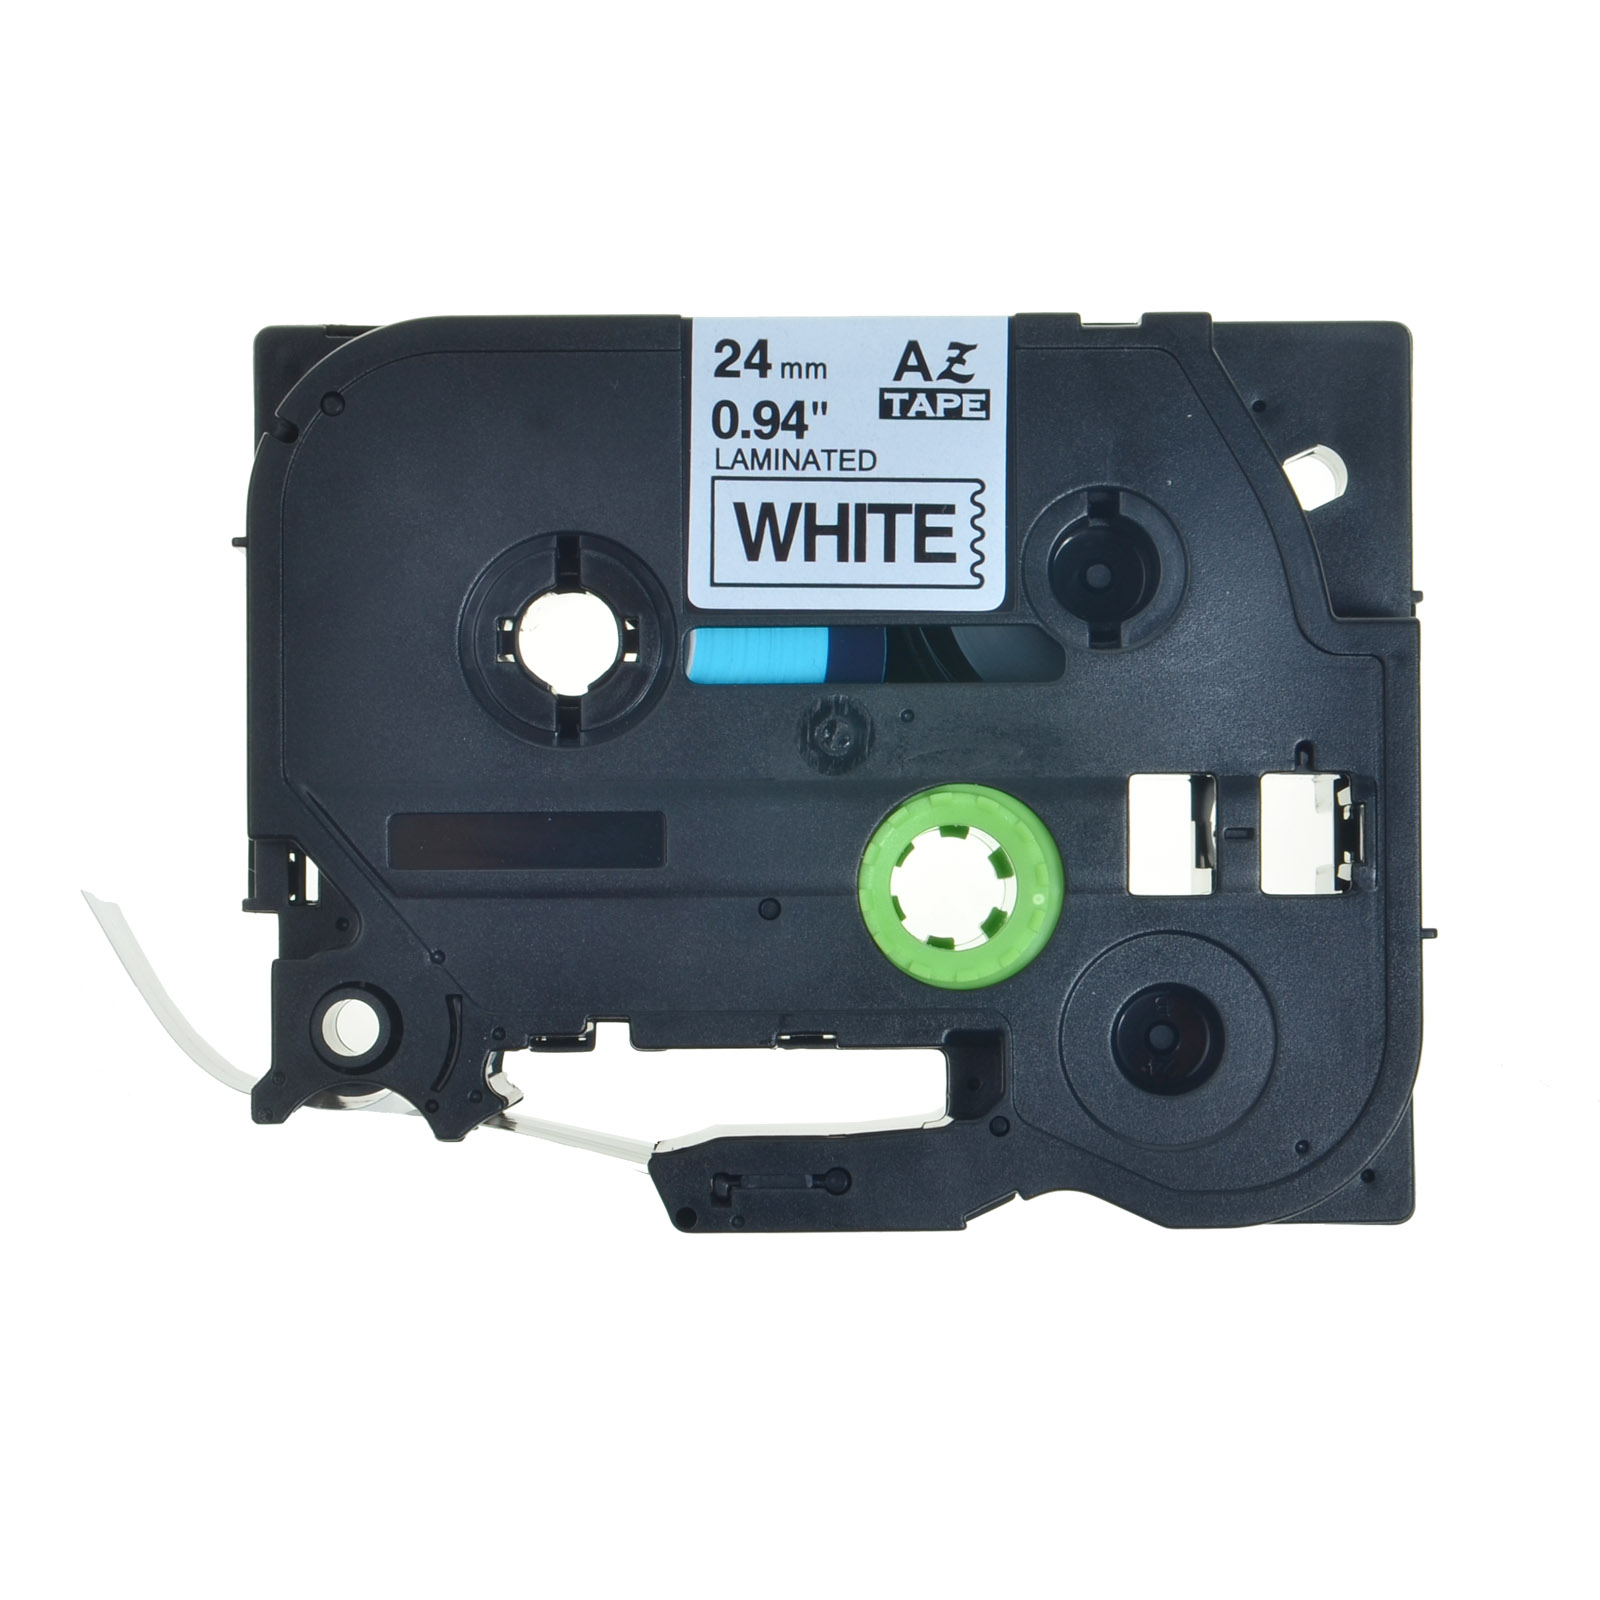 "20PK TZ-251 Black on White Label Tape For Brother P-touch PT-D600 0.94/"" TZe-251"